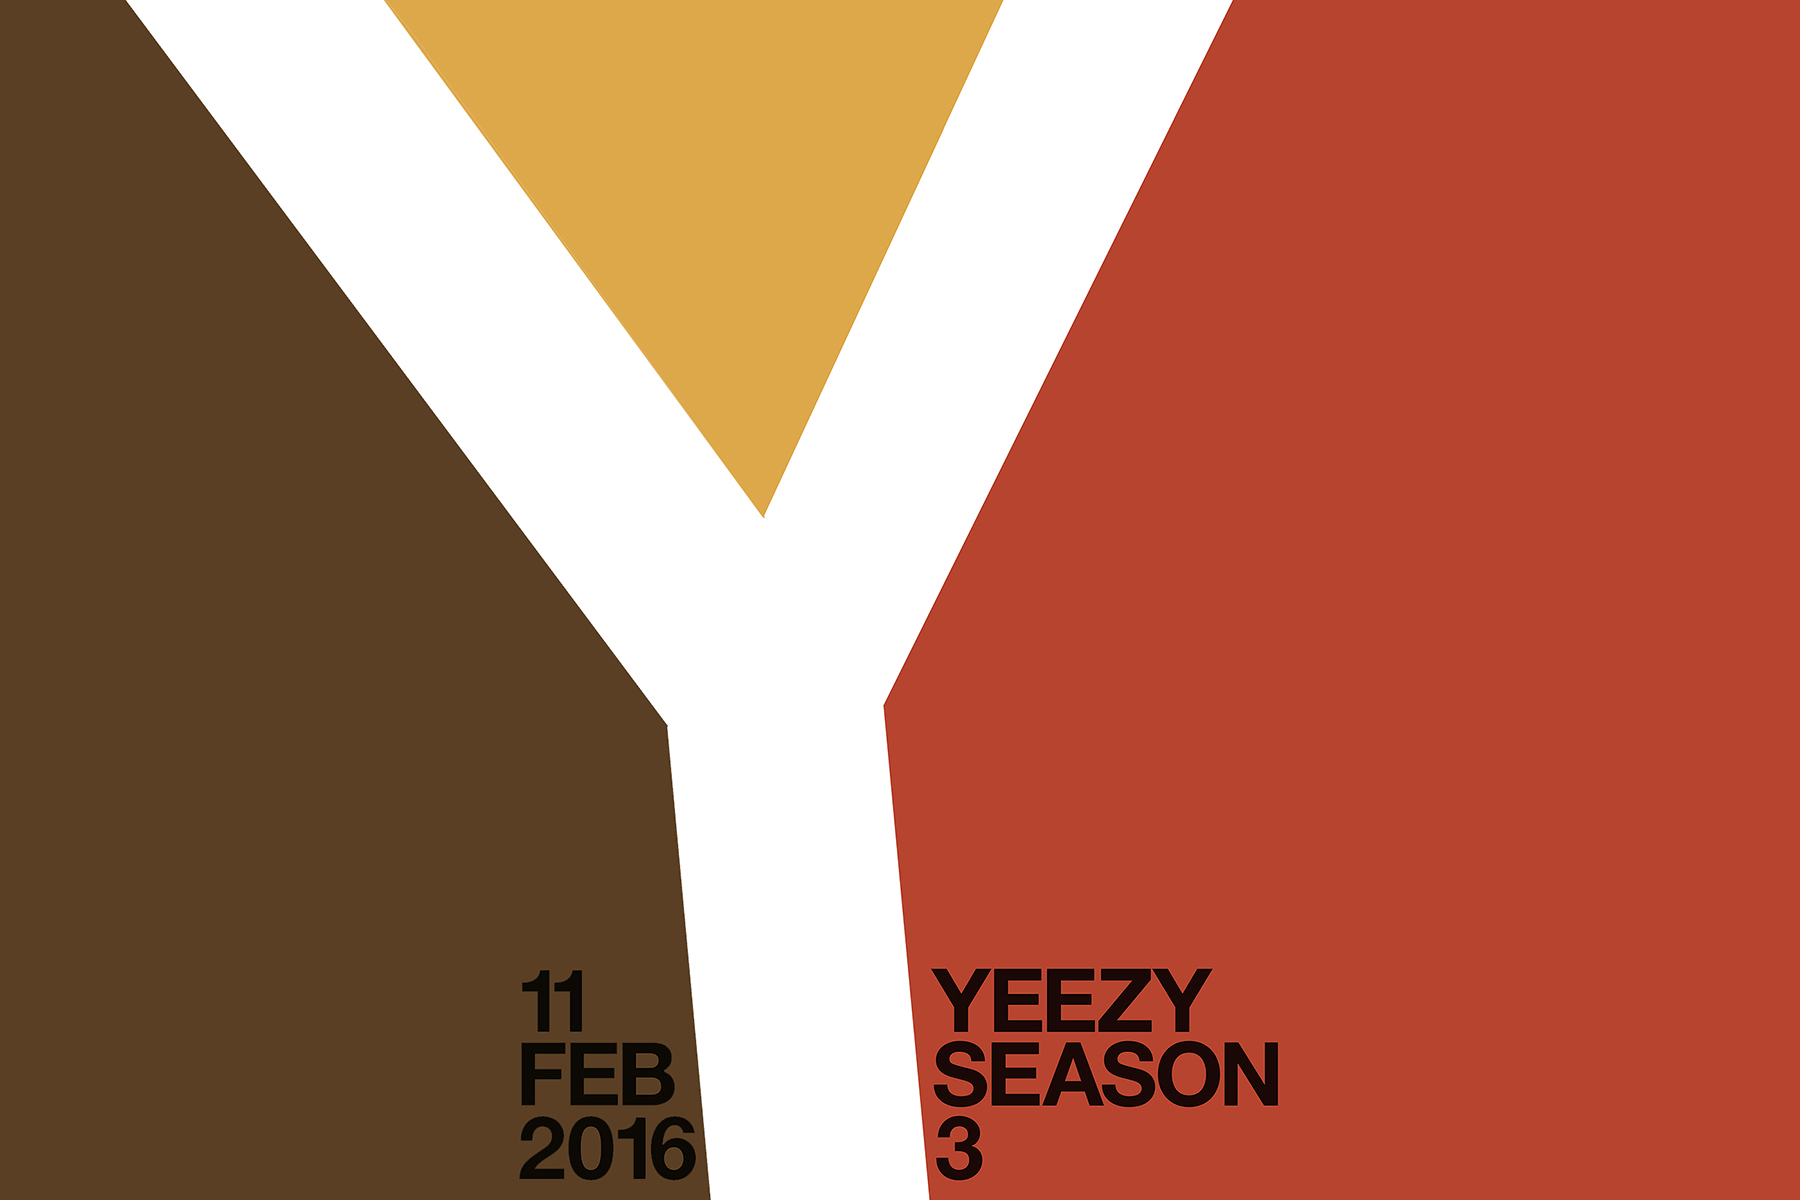 kanye-west-swish-yeezy-season-3-madison-square-garden-222